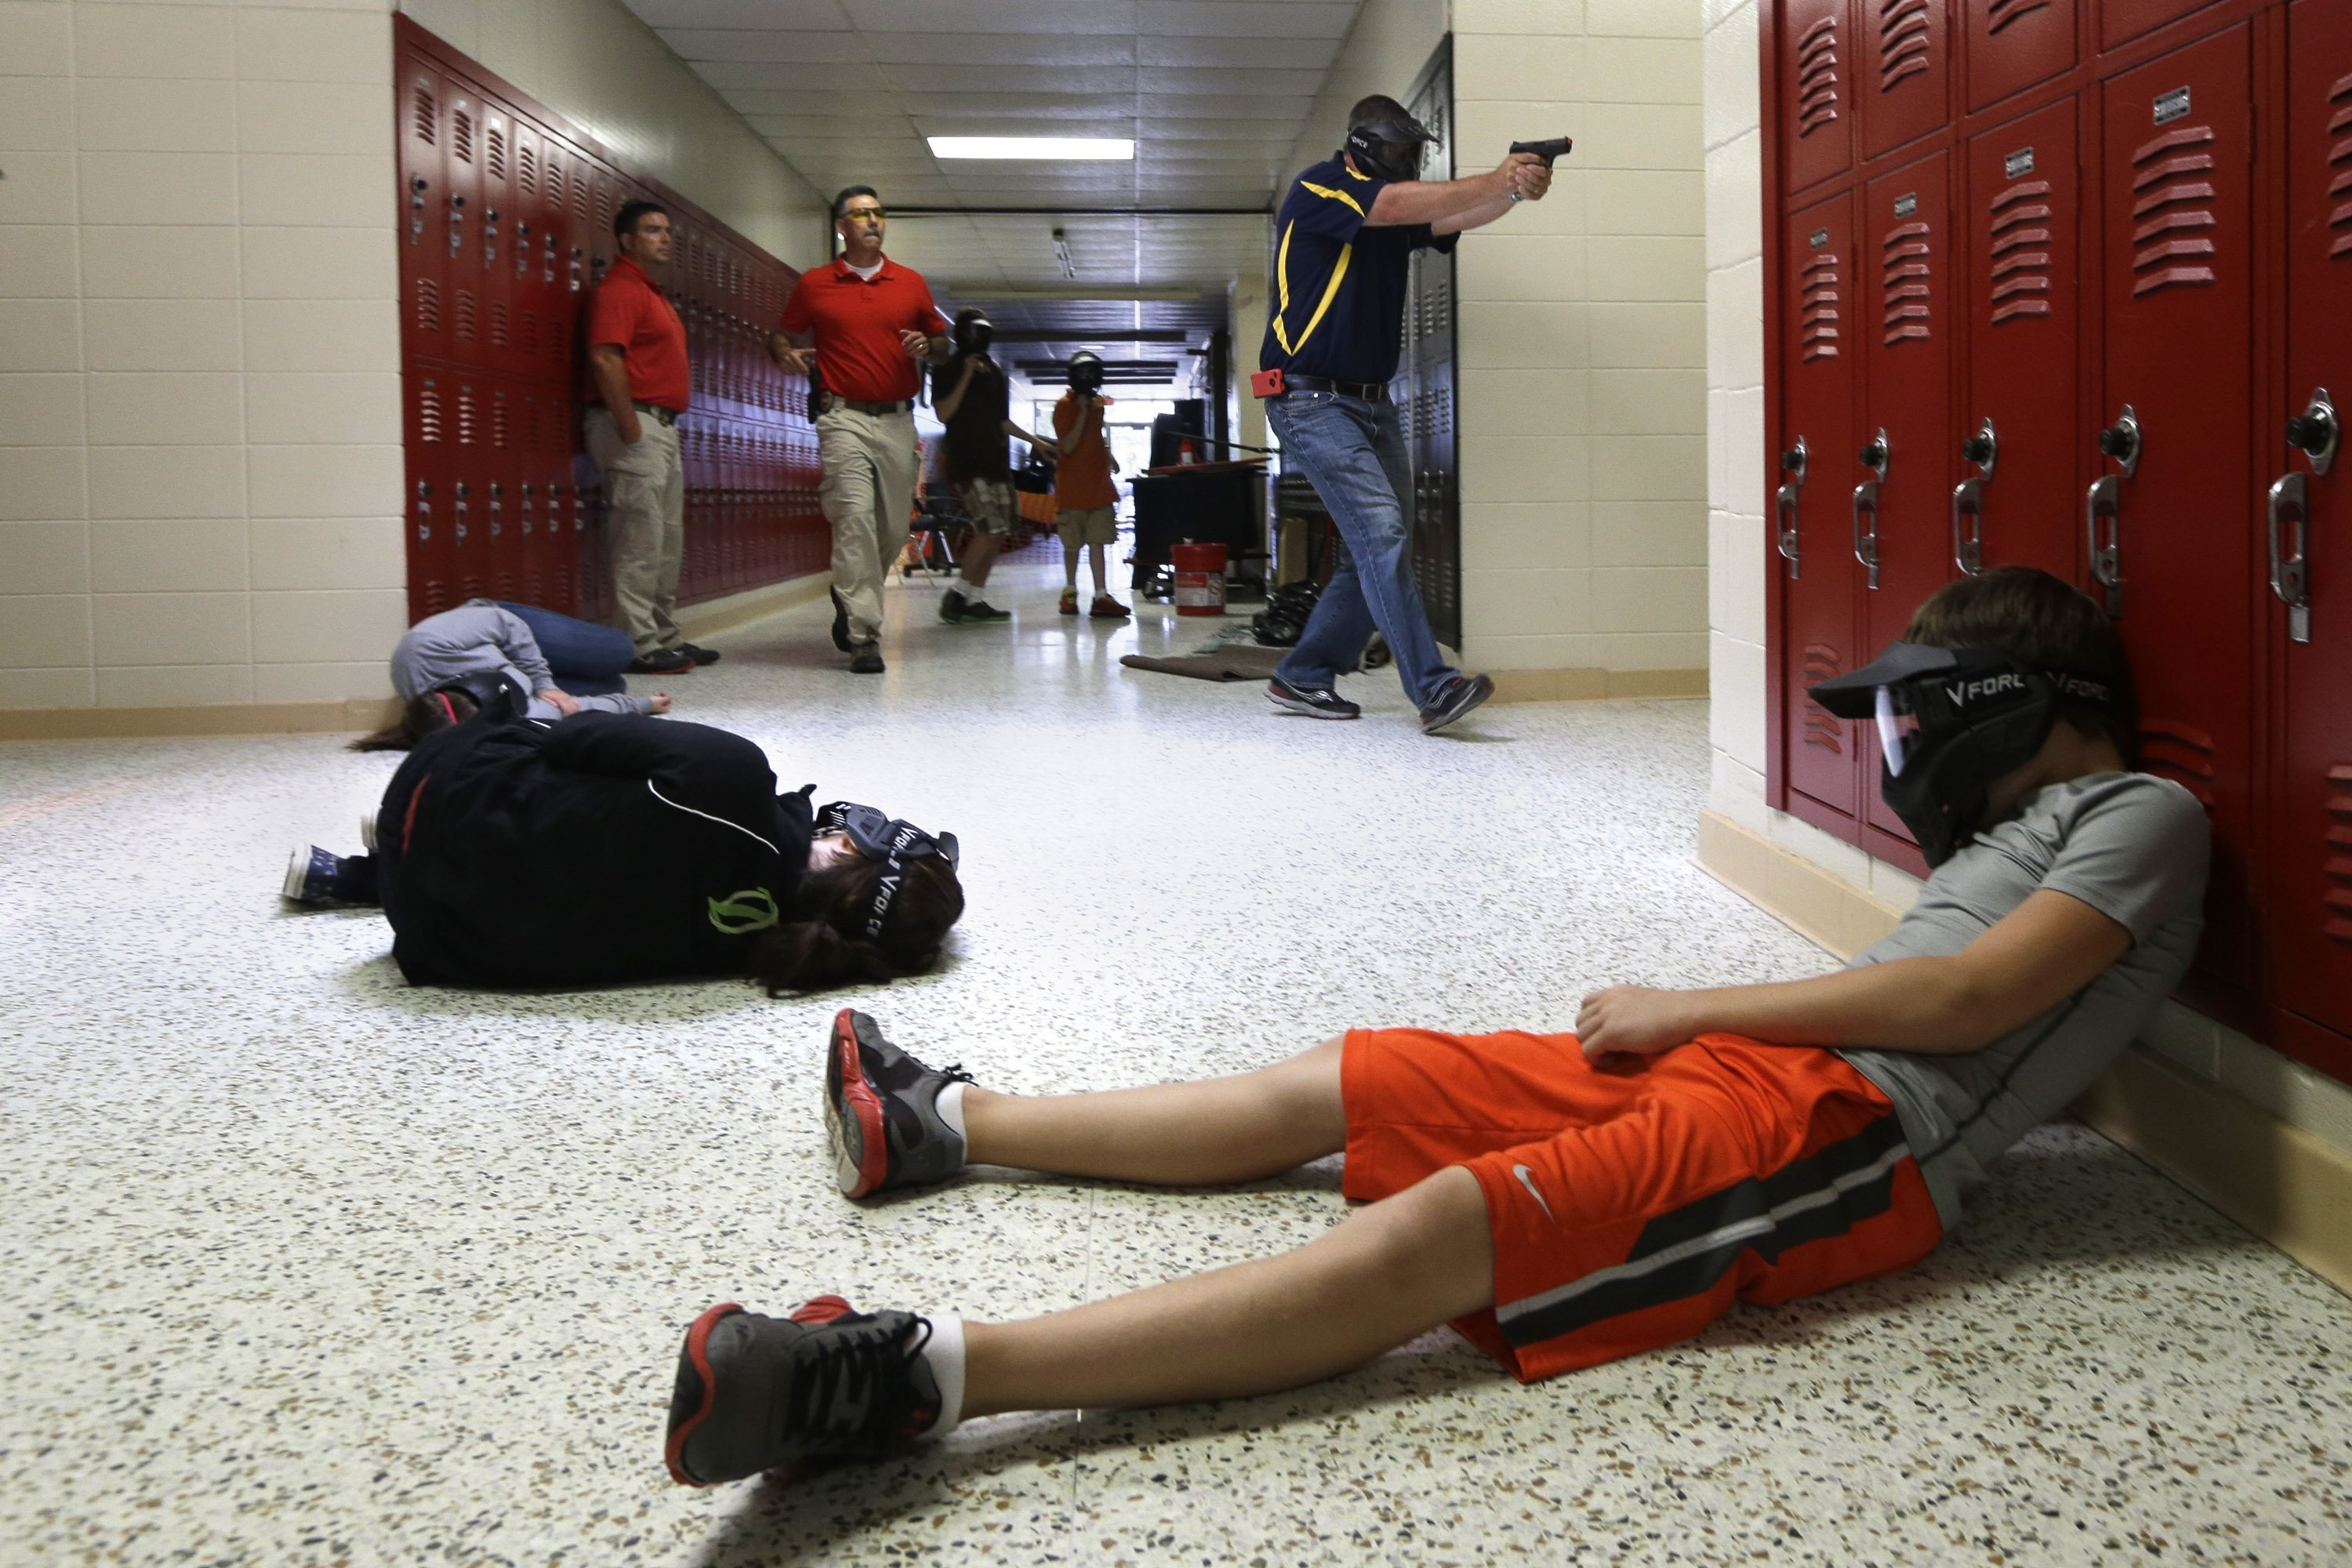 Debate over arming school teachers begins